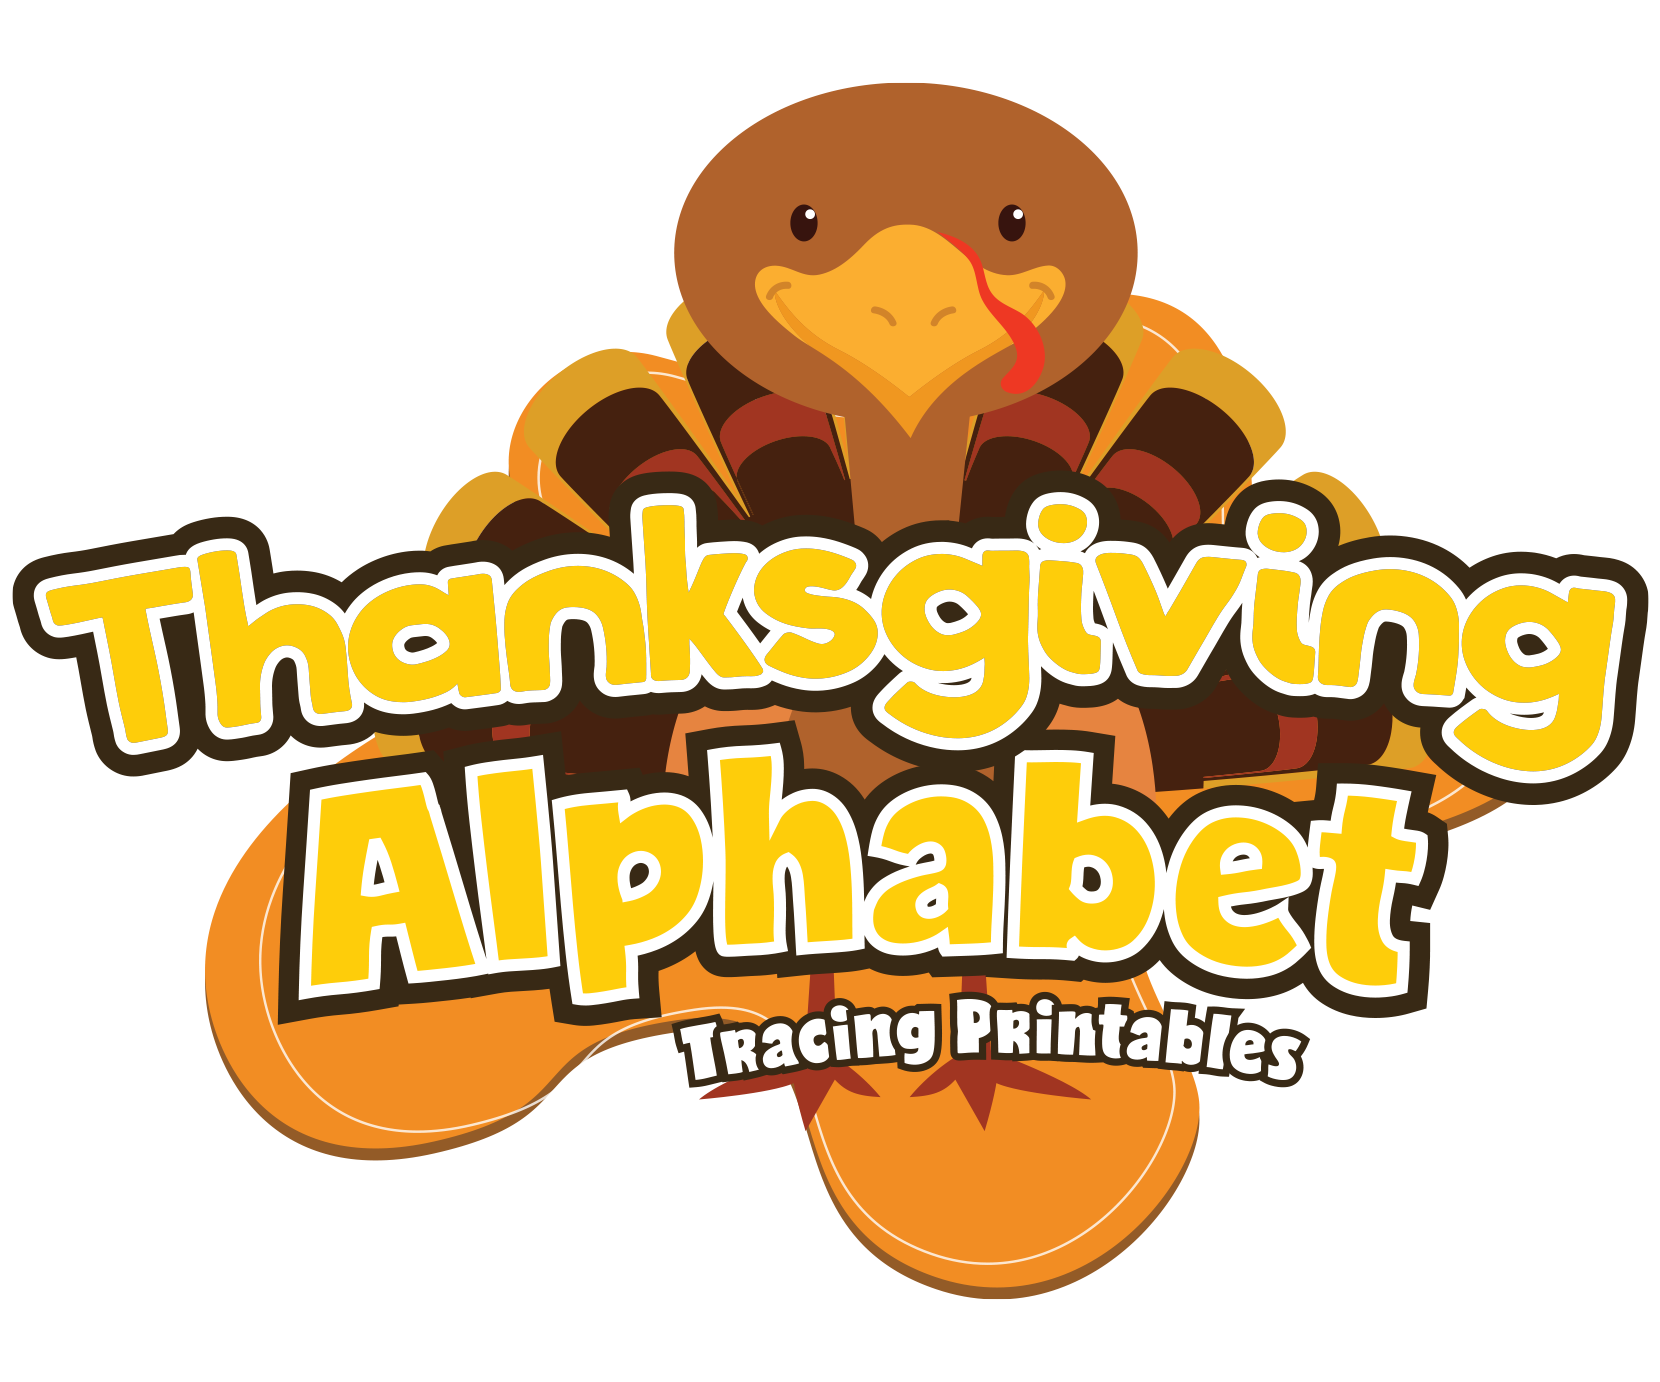 Thanksgiving Alphabet Letter Tracing Pack for Preschoolers — My ... graphic black and white stock